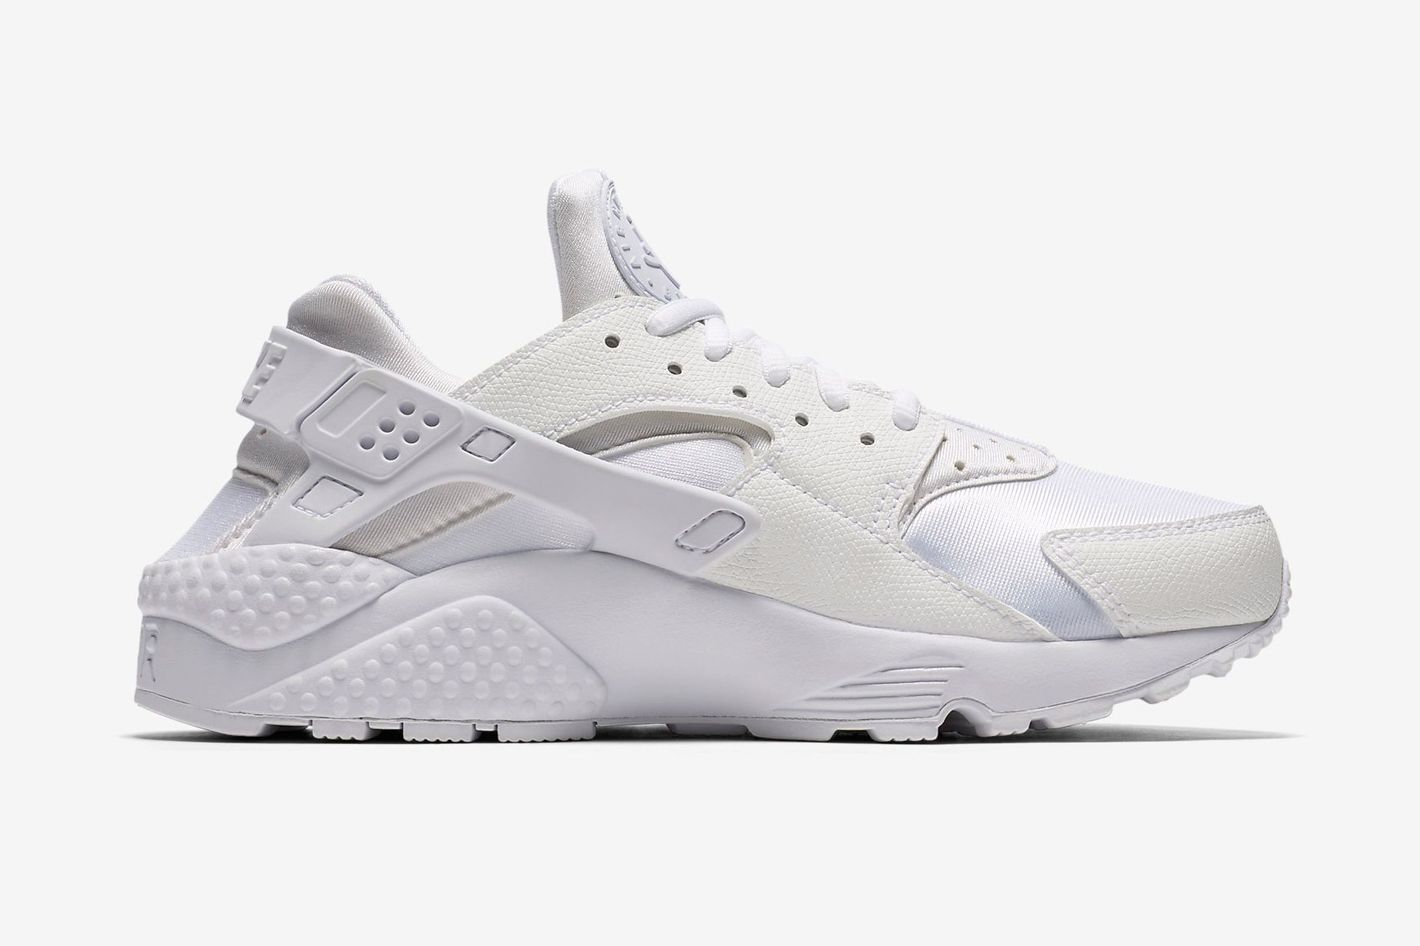 2b76784c9879 Nike Women s Air Huarache Run Sneakers